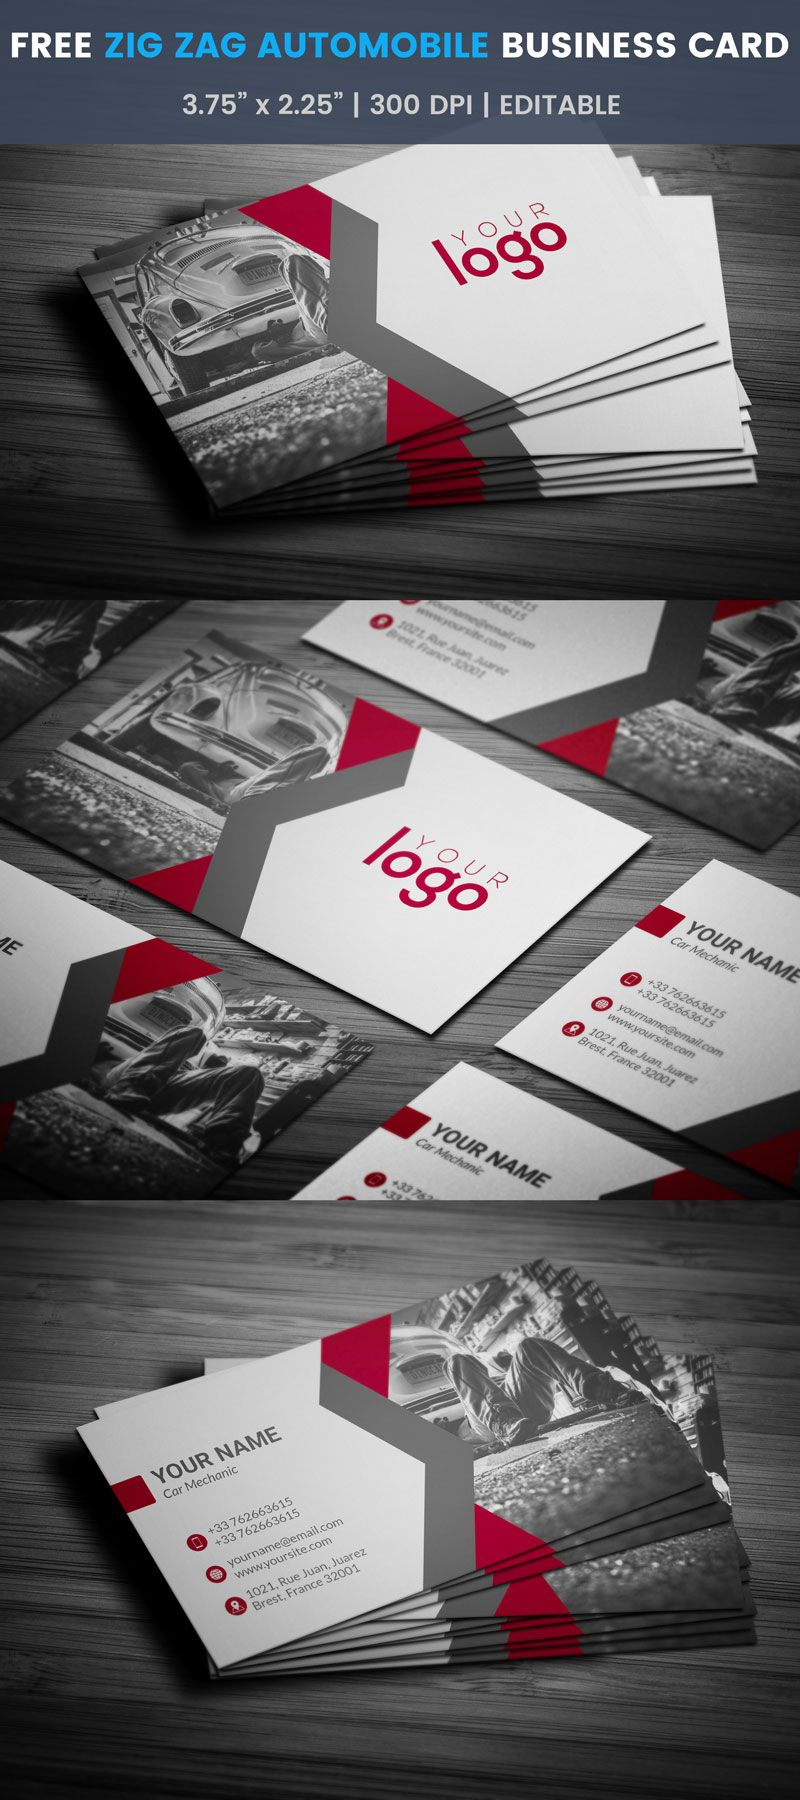 Zigzag Automobile Business Card - Full Preview | Free Automotive ...